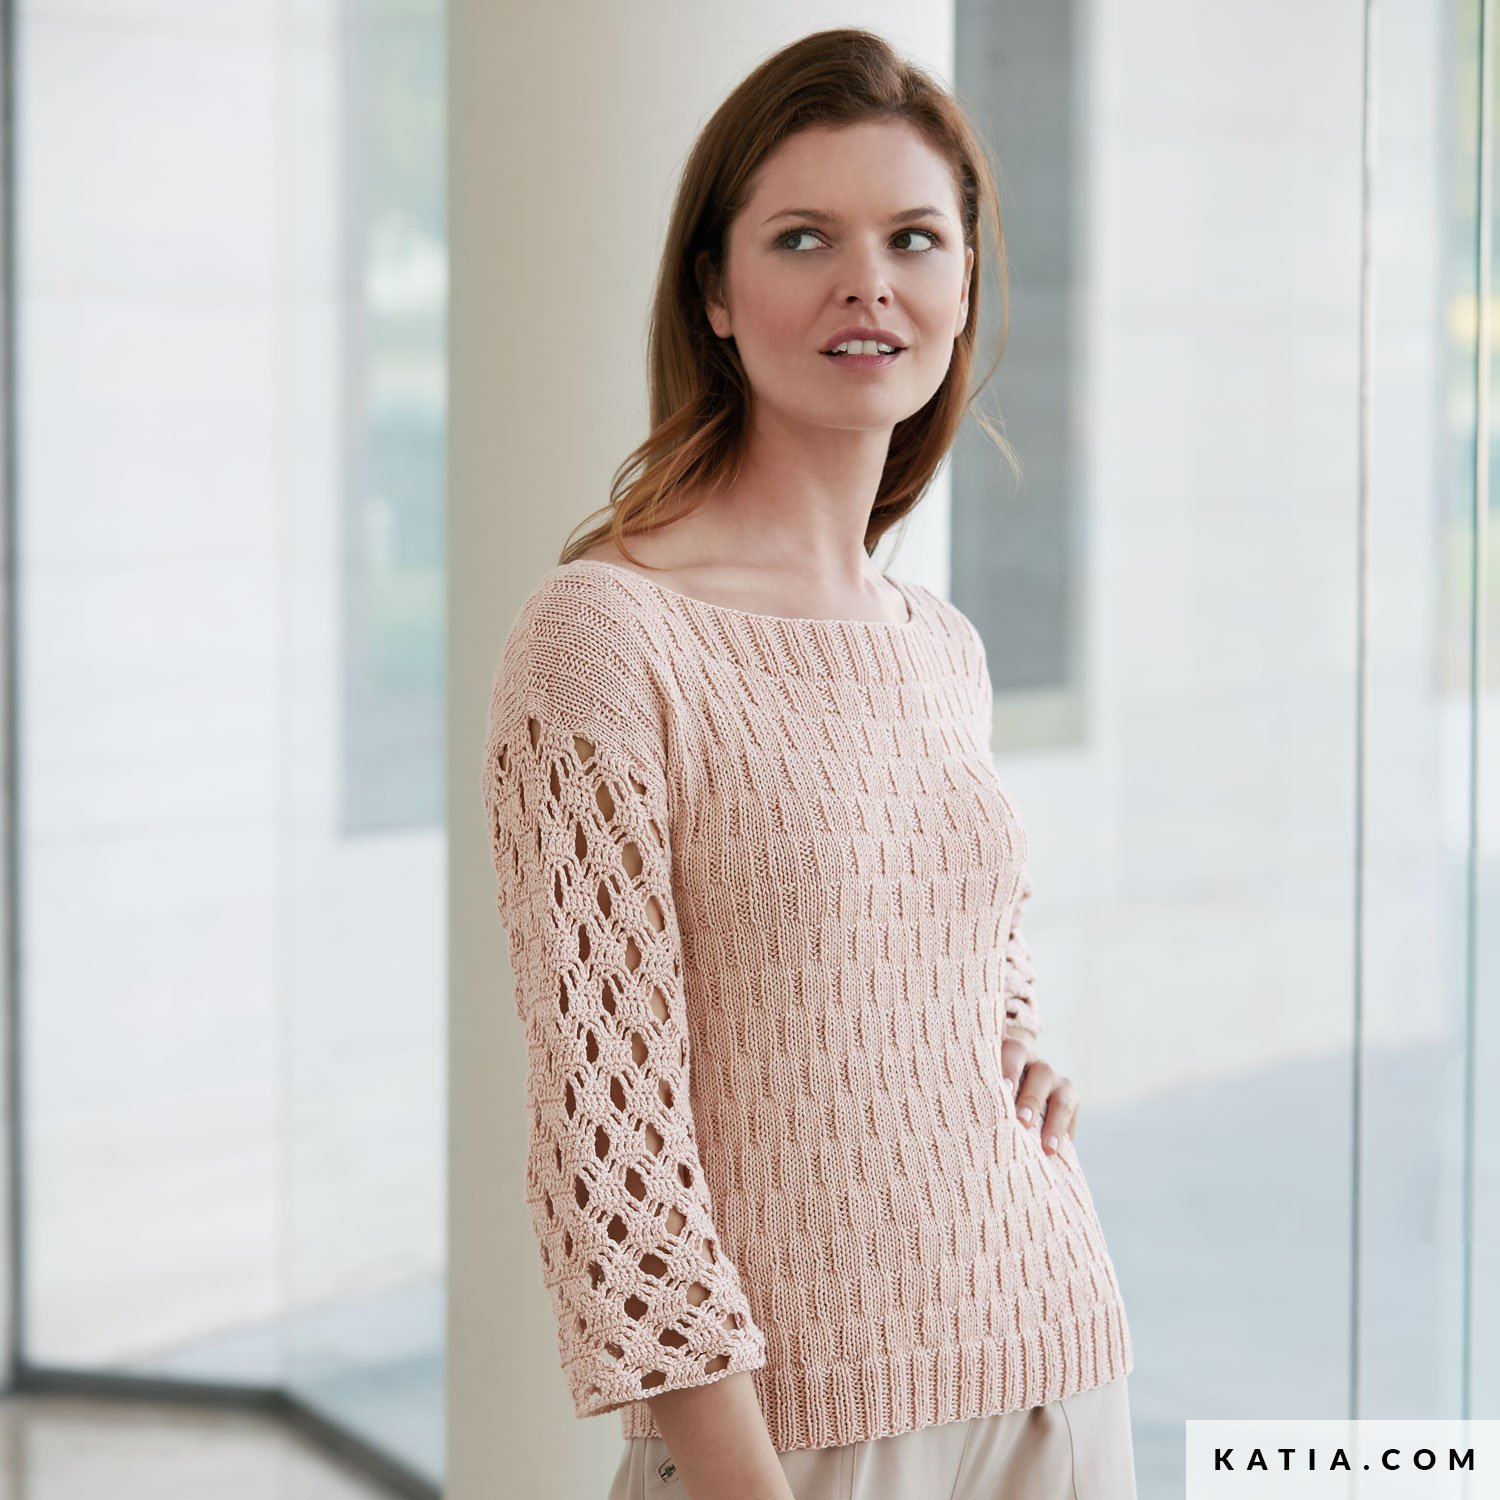 e1de33036 pattern knit crochet woman sweater spring summer katia 6074 36 g